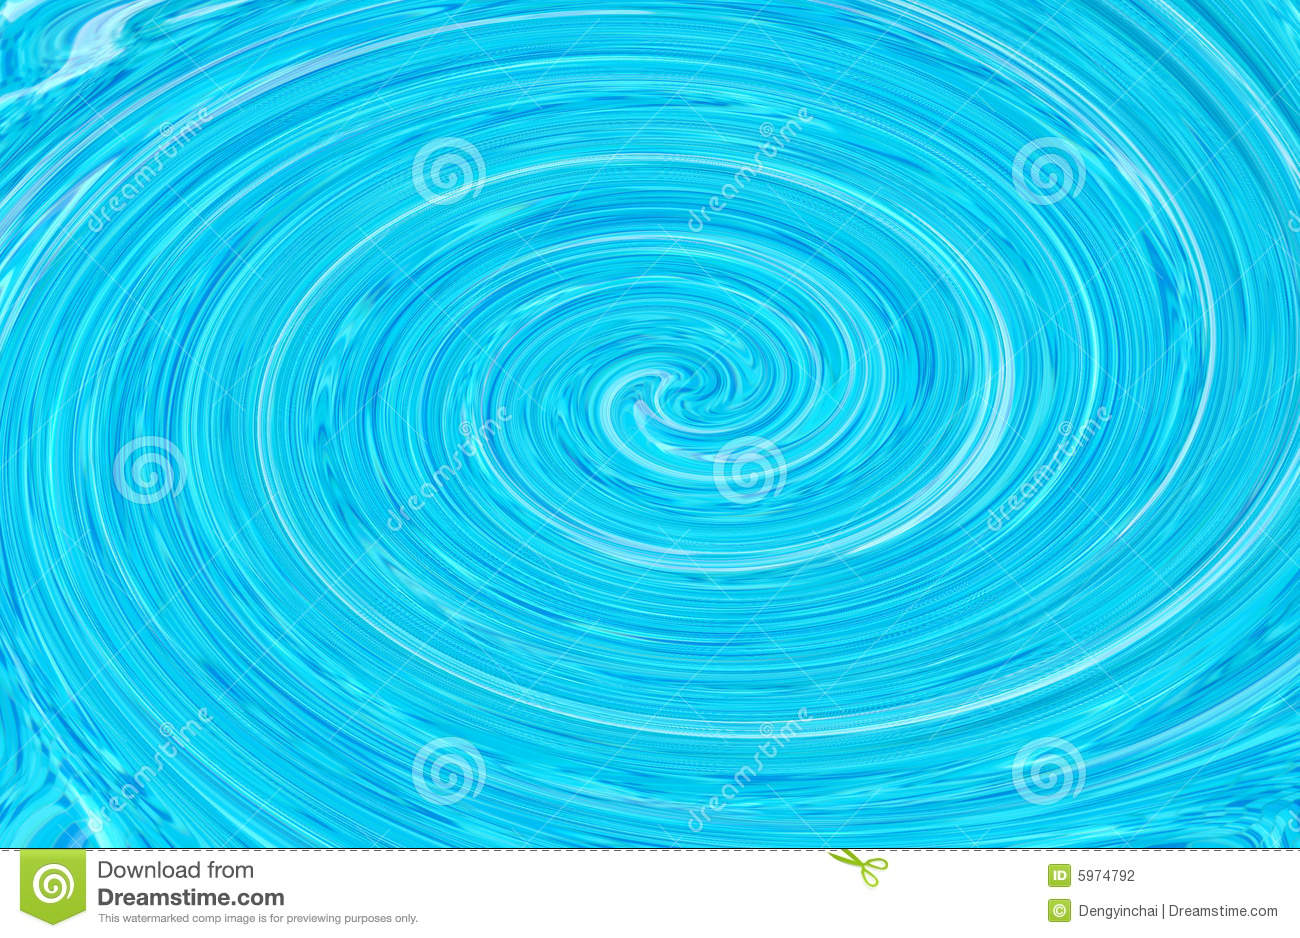 The Blue Water Whirlpool S Background Stock Photo - Image of ...